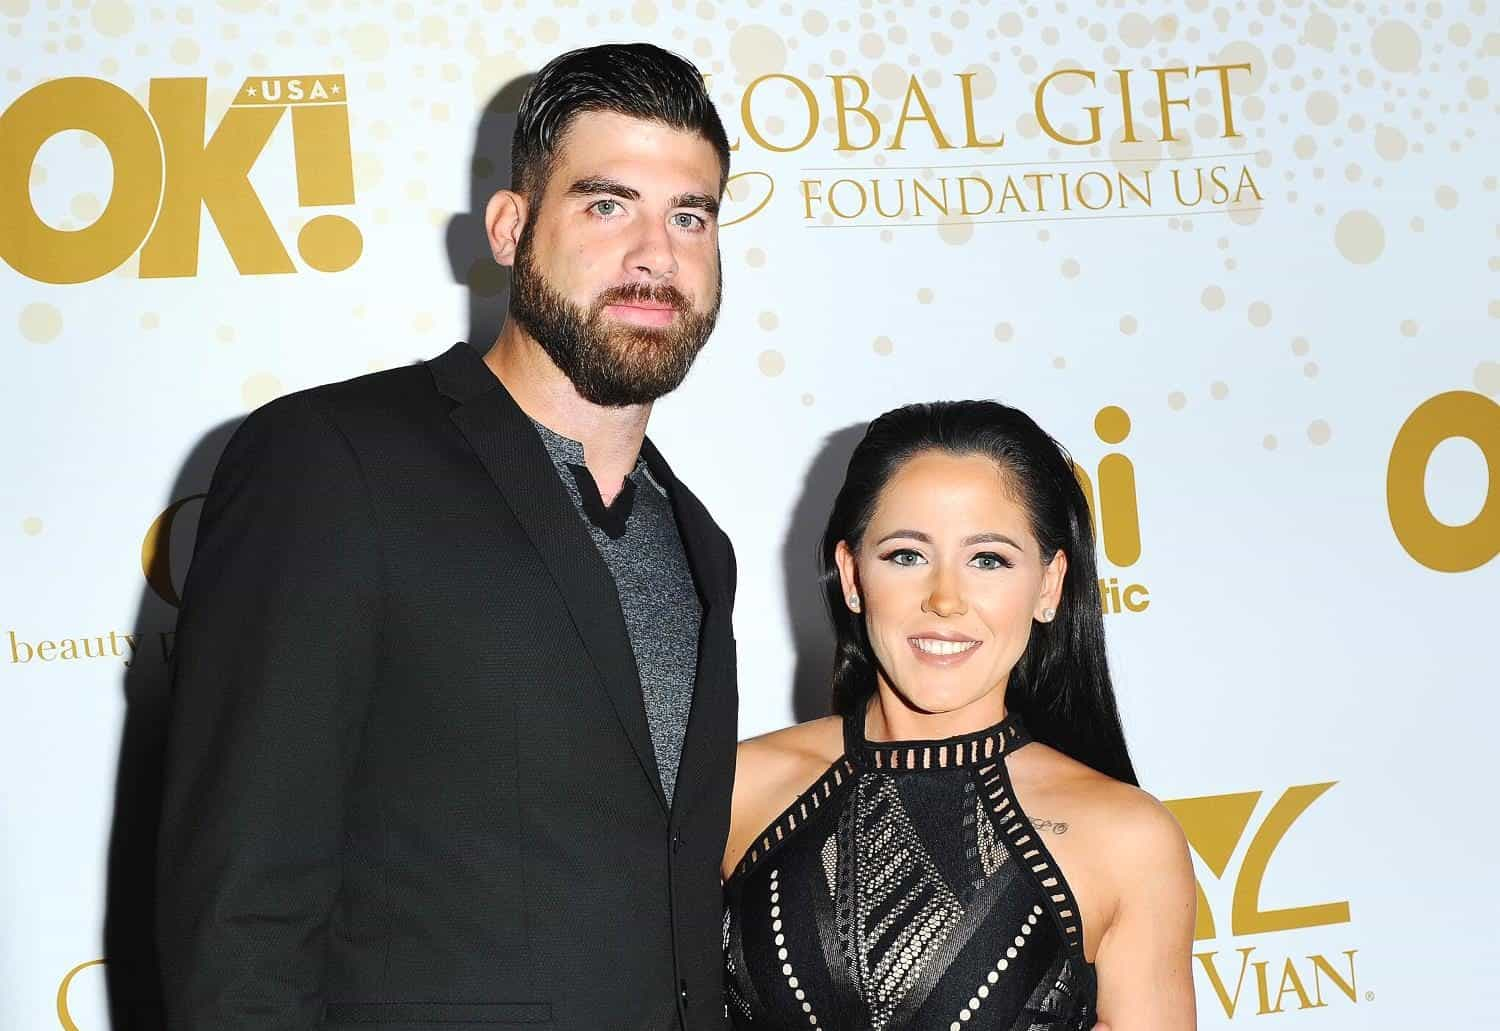 """Teen Mom 2's Jenelle Evans Reveals She's """"Hurt"""" and May Divorce David Eason After Dog Killing, Plus He Shares Video of Ensley With Nugget and Responds to Backlash"""